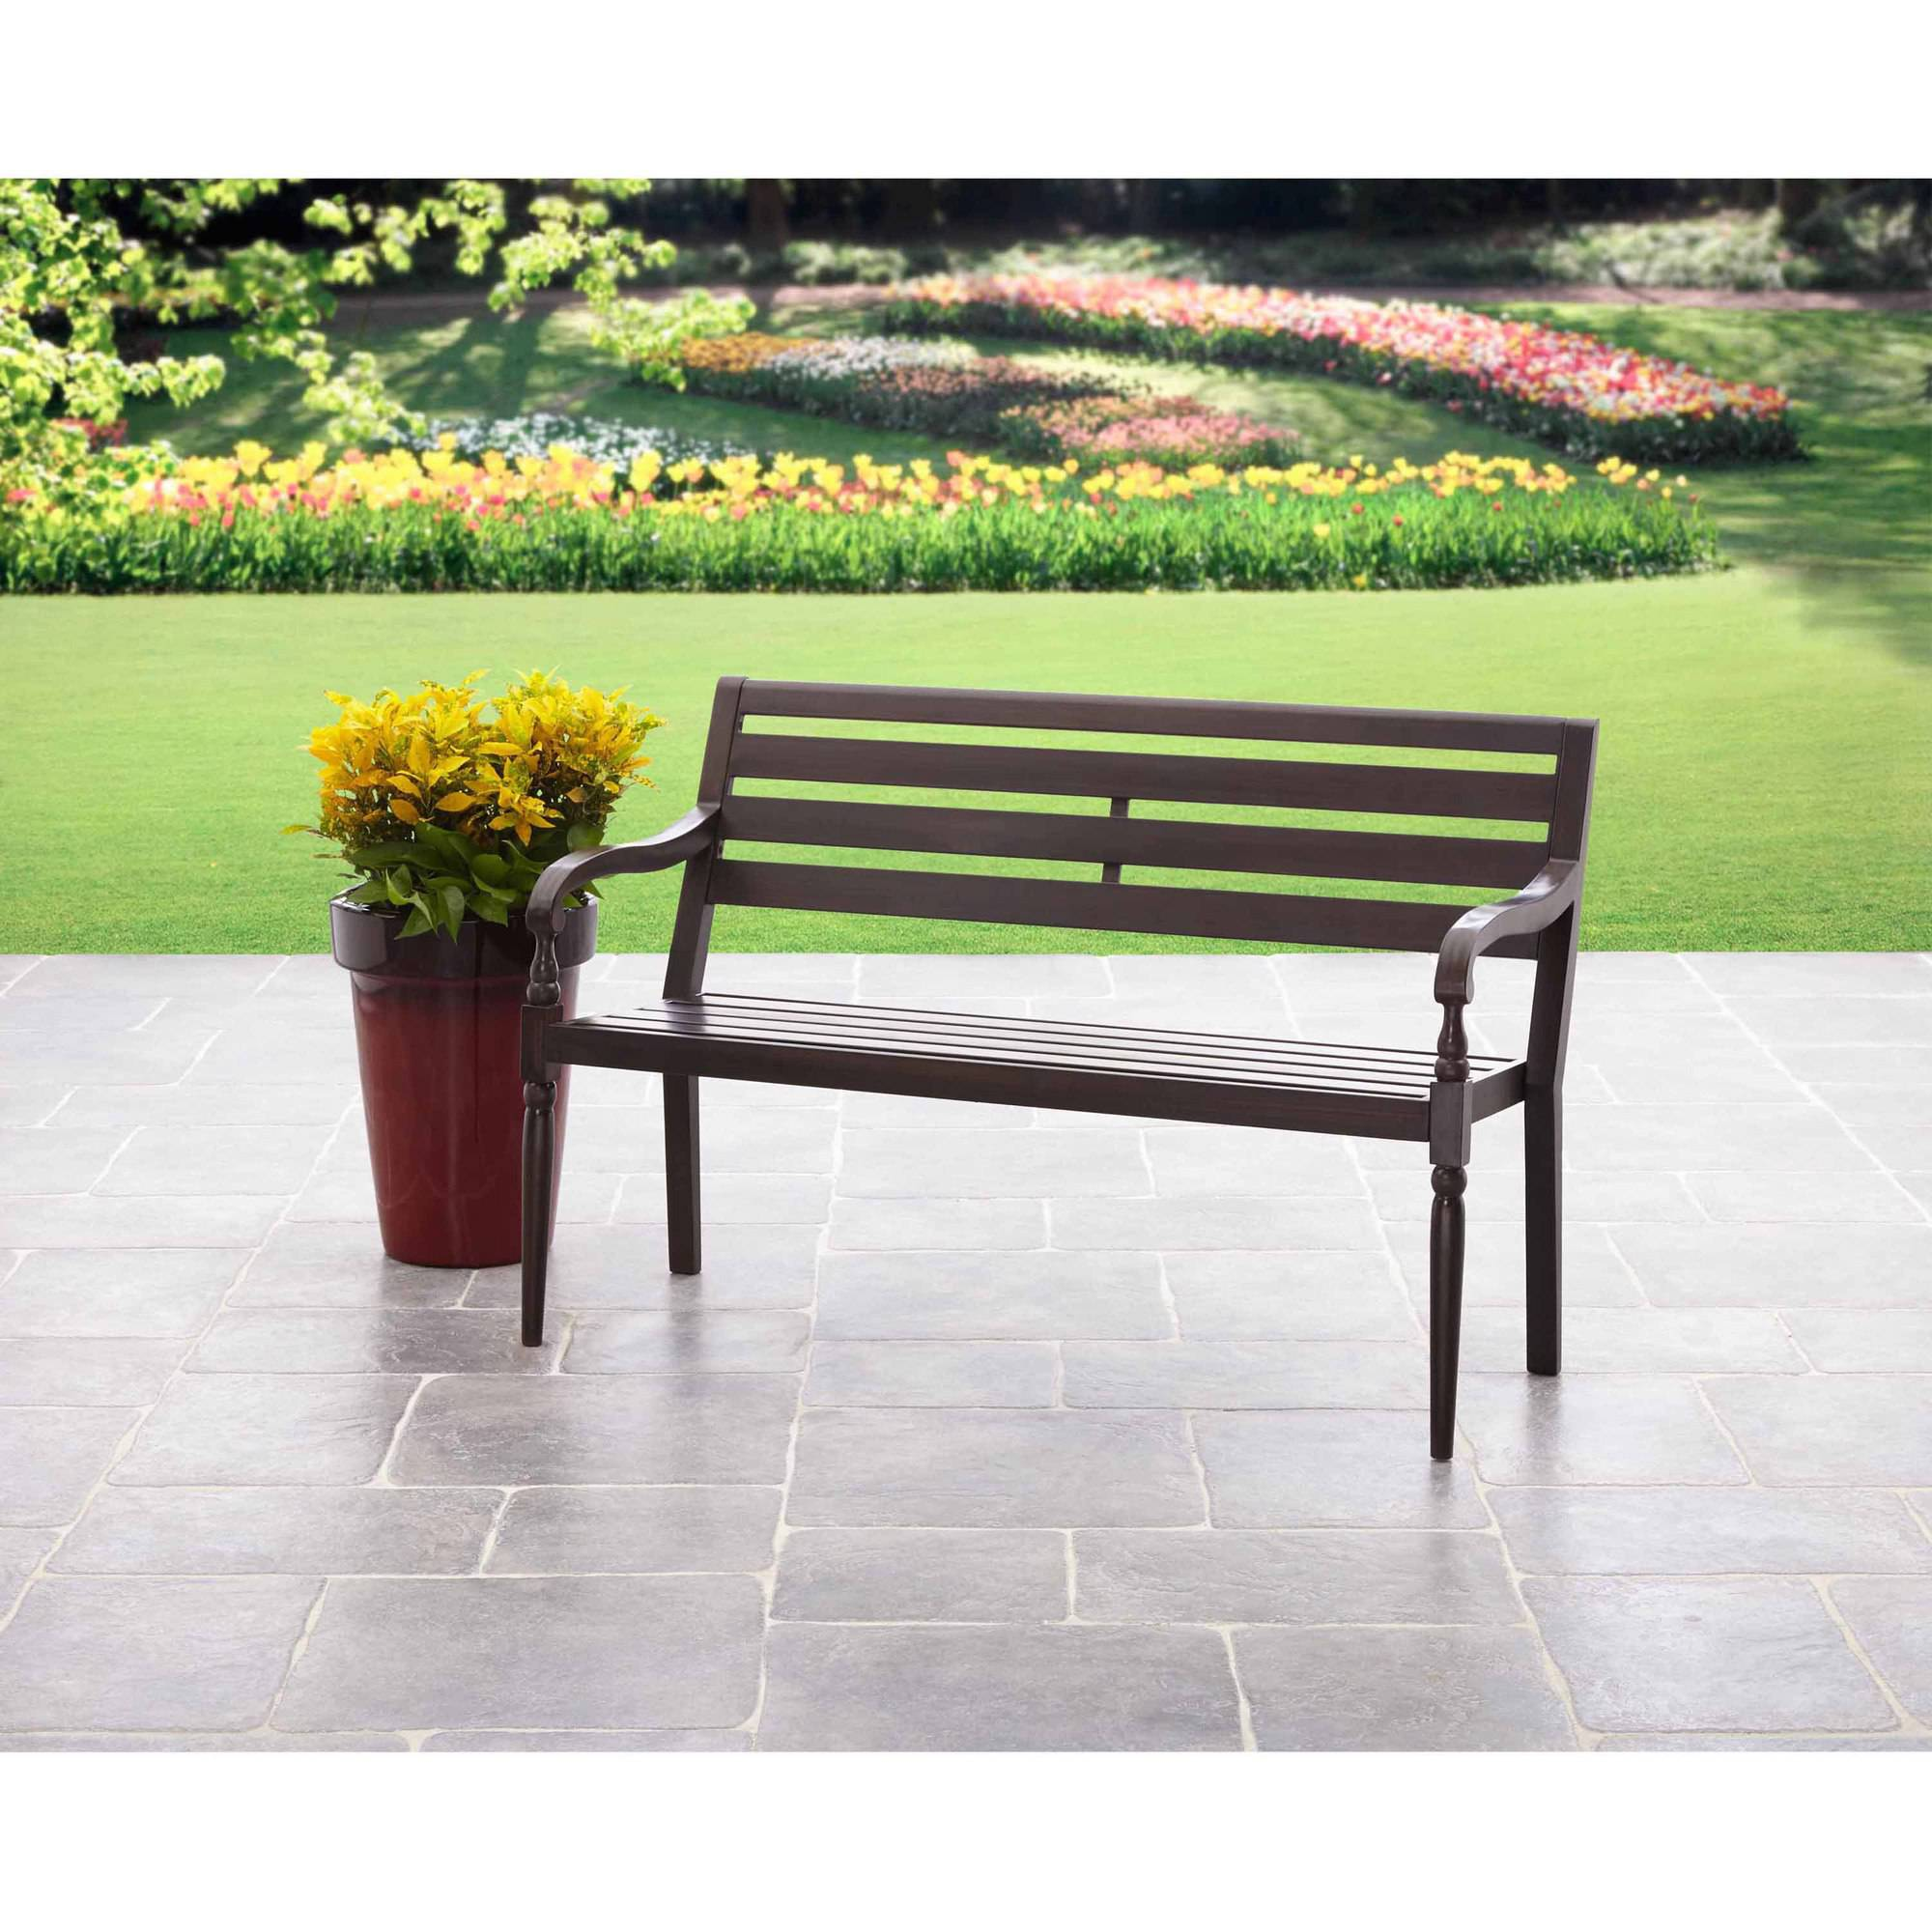 Bcp Patio Garden Bench Park Yard Outdoor Furniture Steel Frame